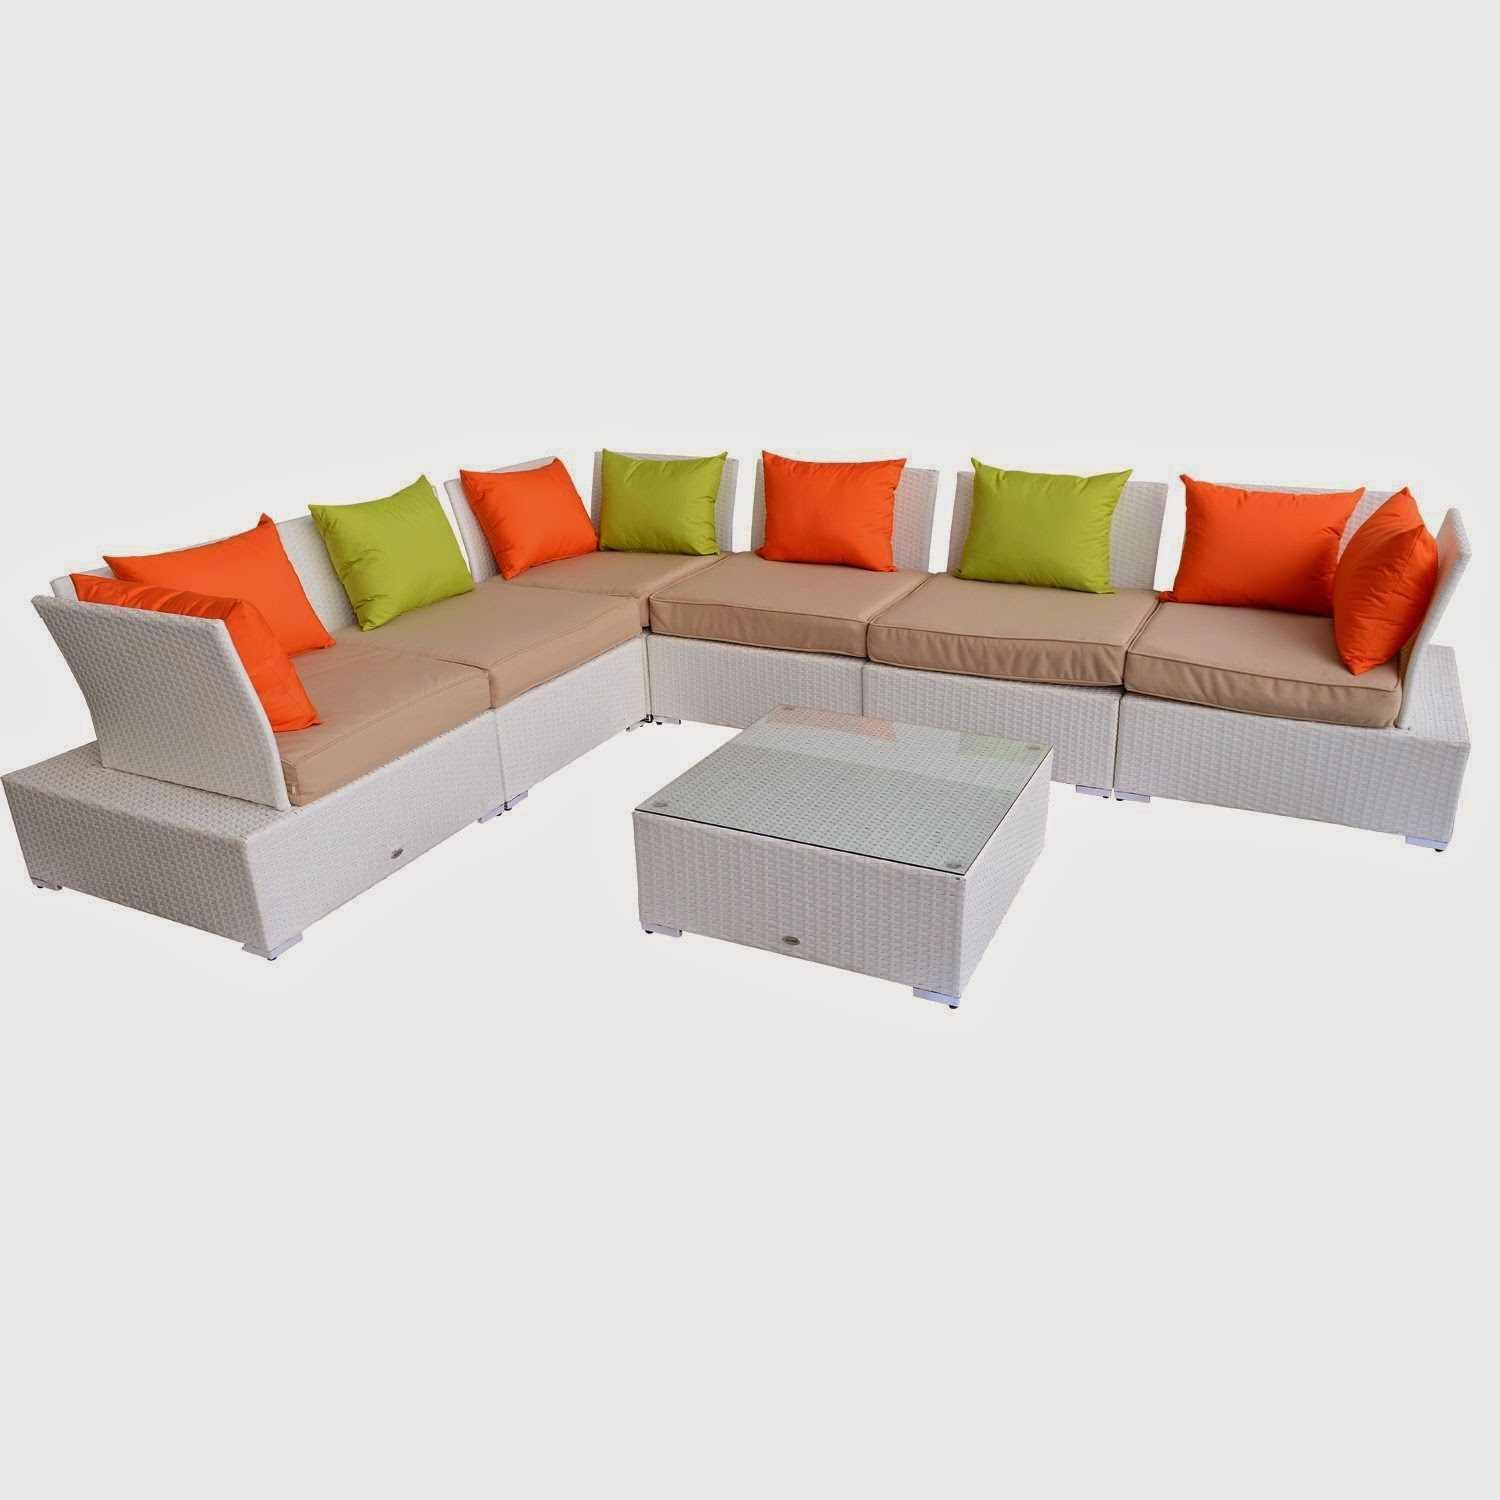 Outsunny Outdoor 7pc PE Rattan Wicker Sectional Sectional Couch Sofa Set